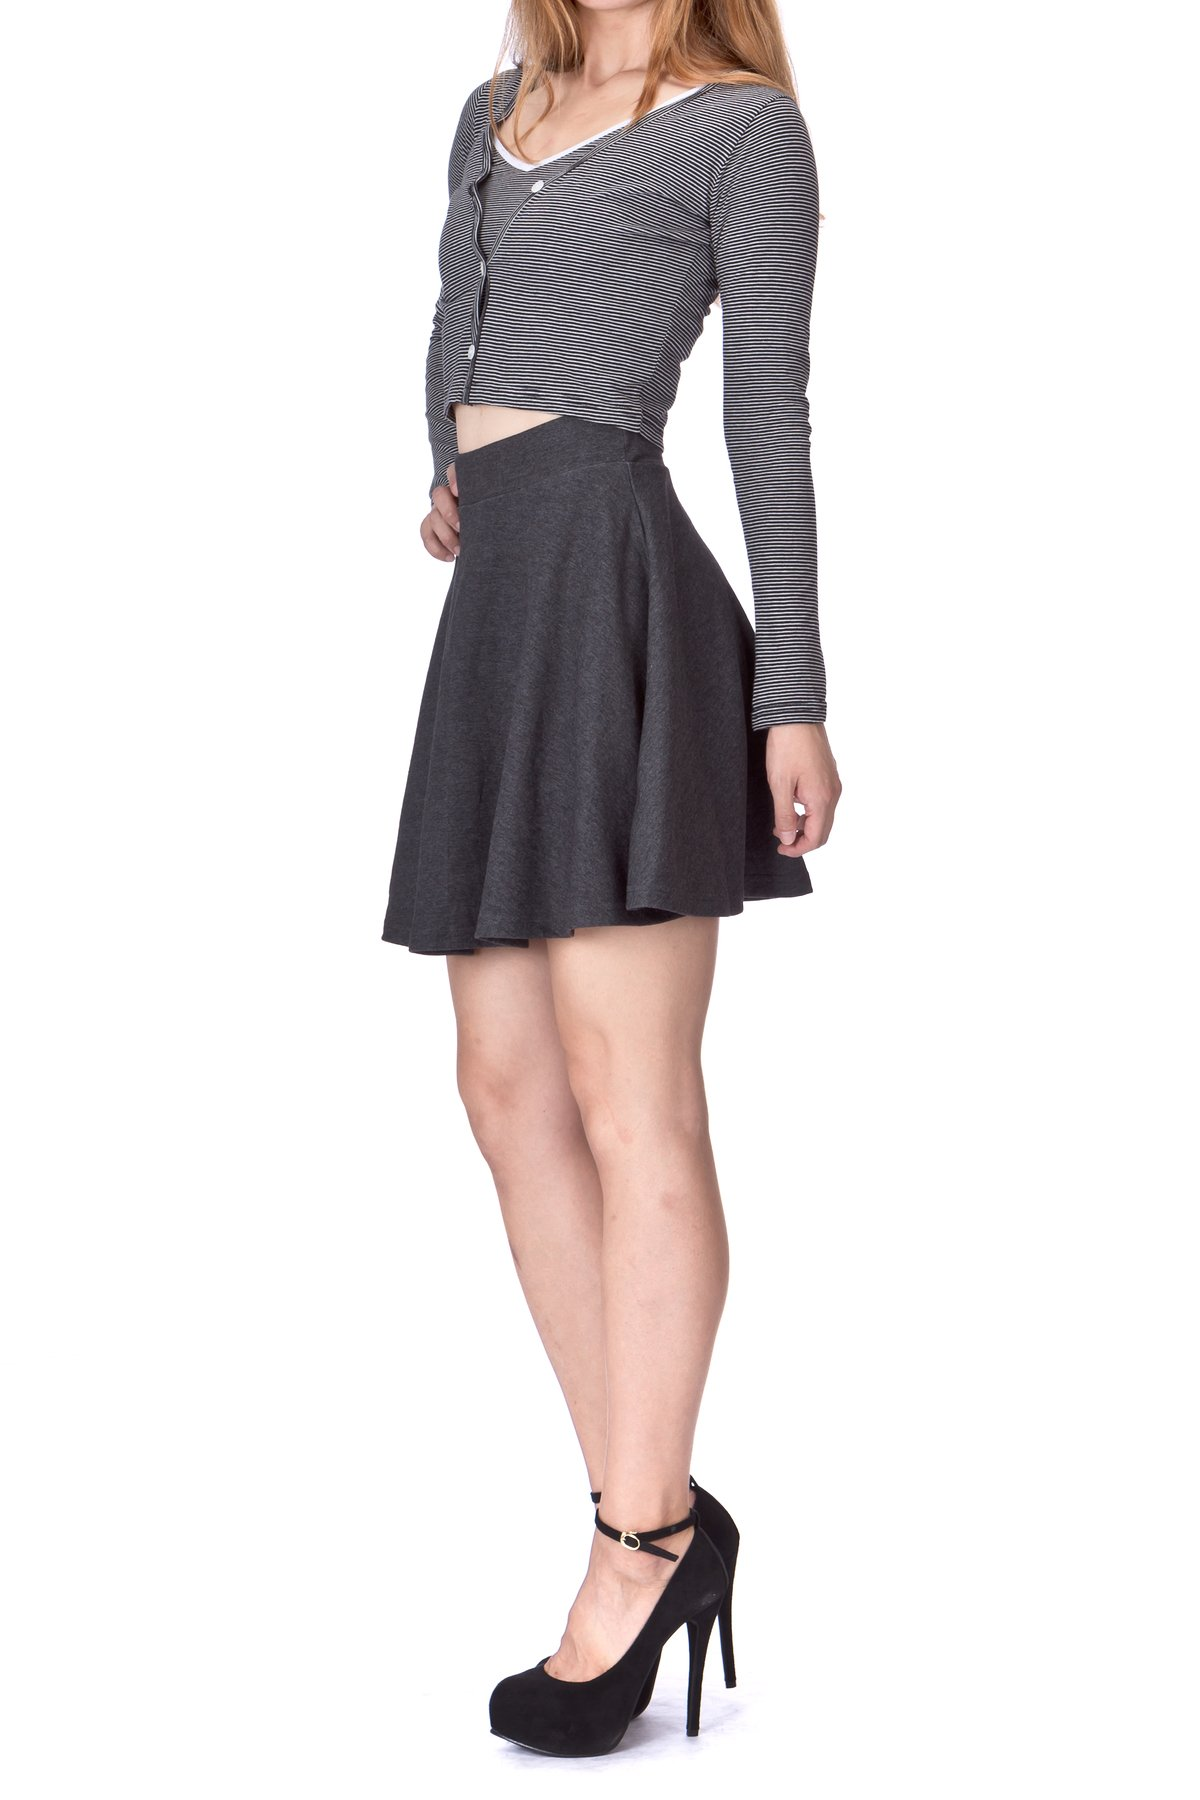 Basic Solid Stretchy Cotton High Waist A line Flared Skater Mini Skirt Charcoal 04 1